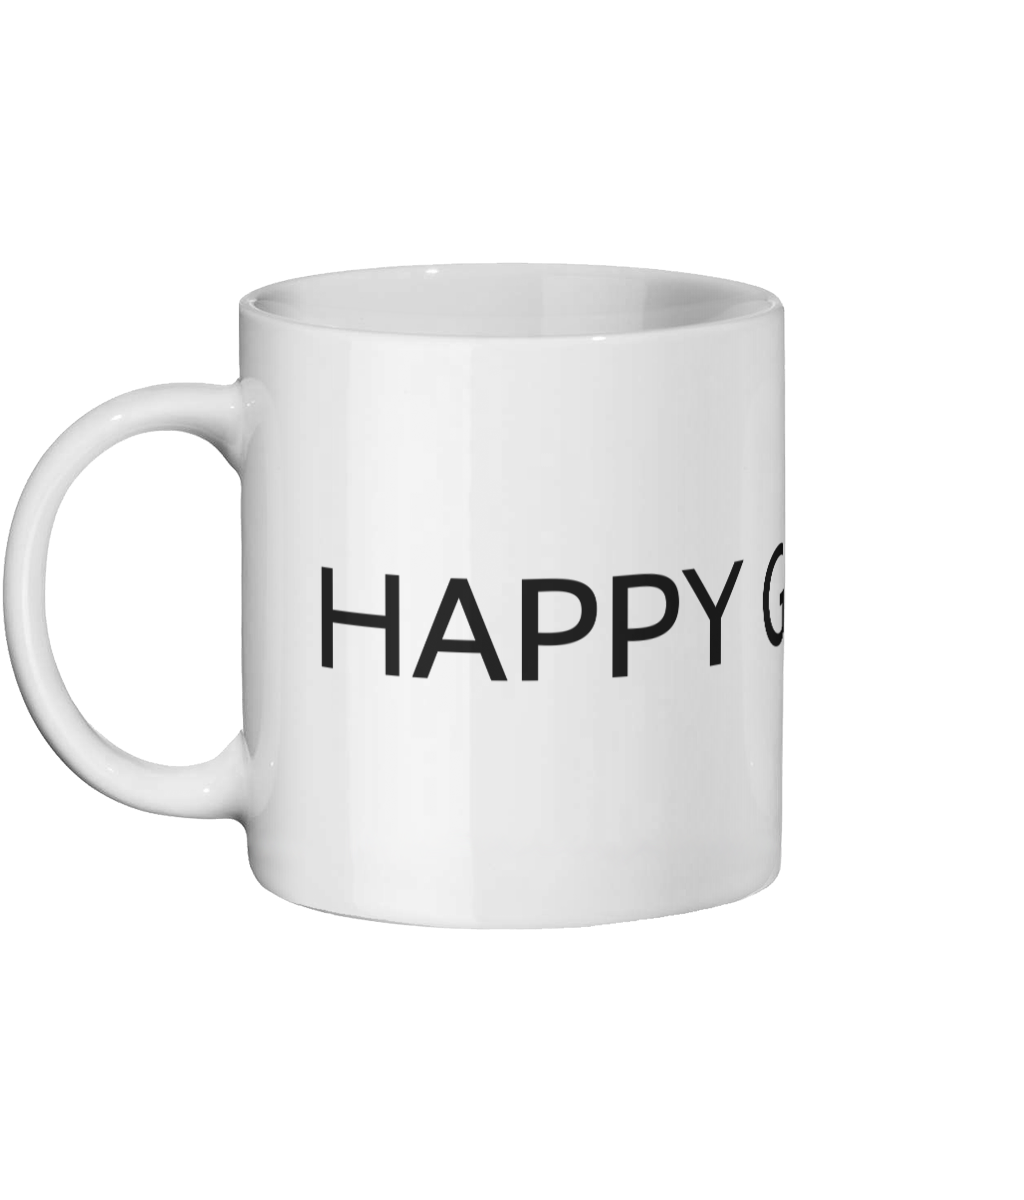 Happy Go Lucky Original Mug Ceramic